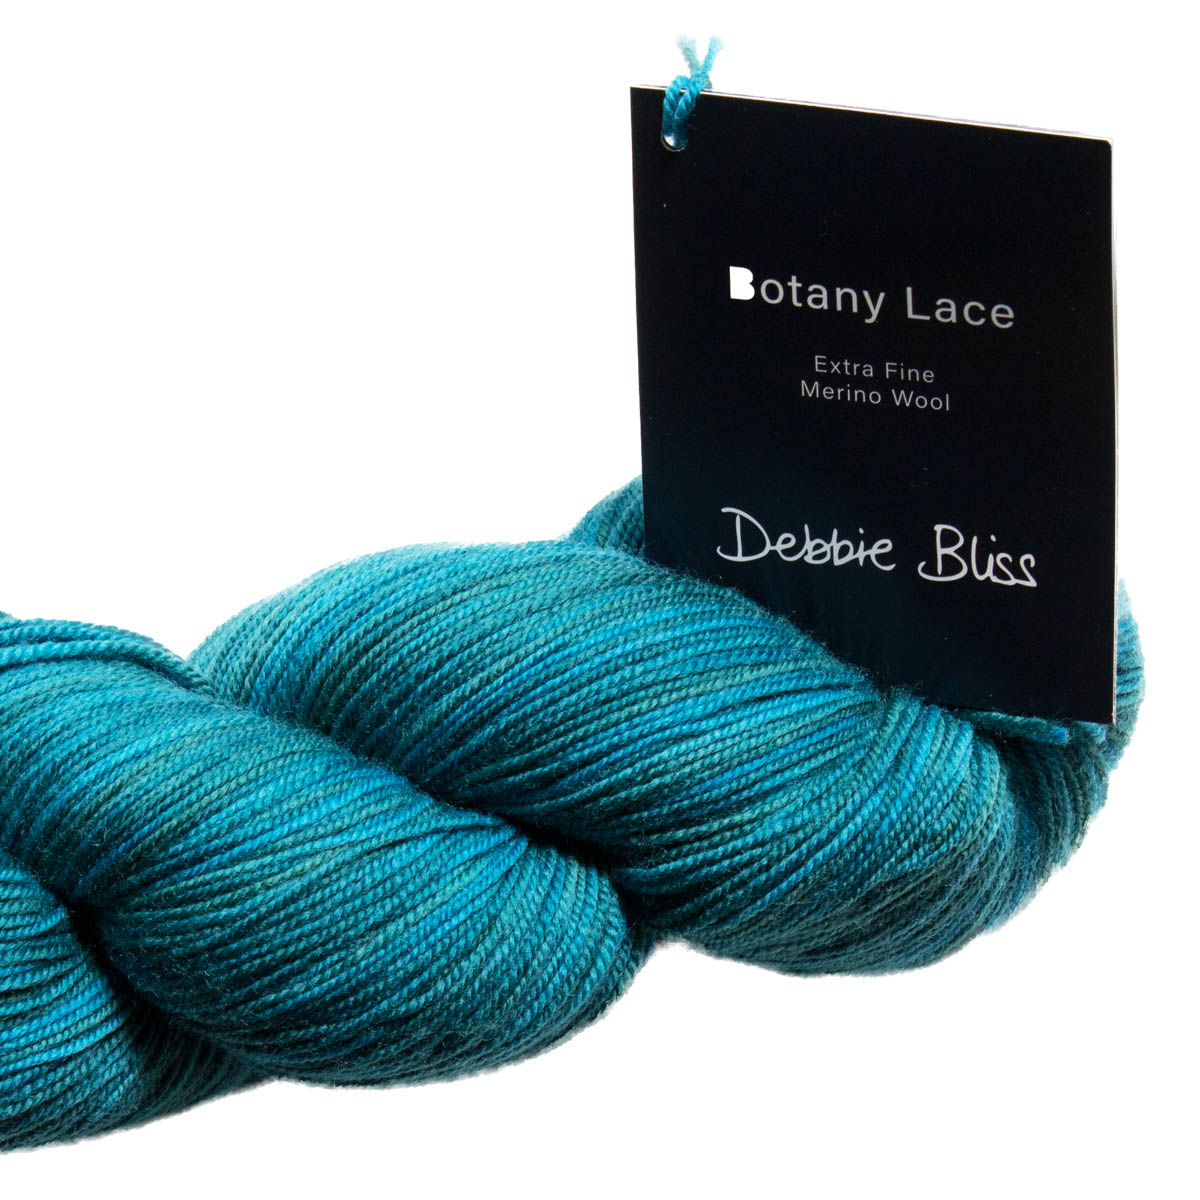 Botany Lace - # 3010 CORDOBA - 2 x Skeins - Blended Shades of Teal - 100% Extra Fine Merino Wool